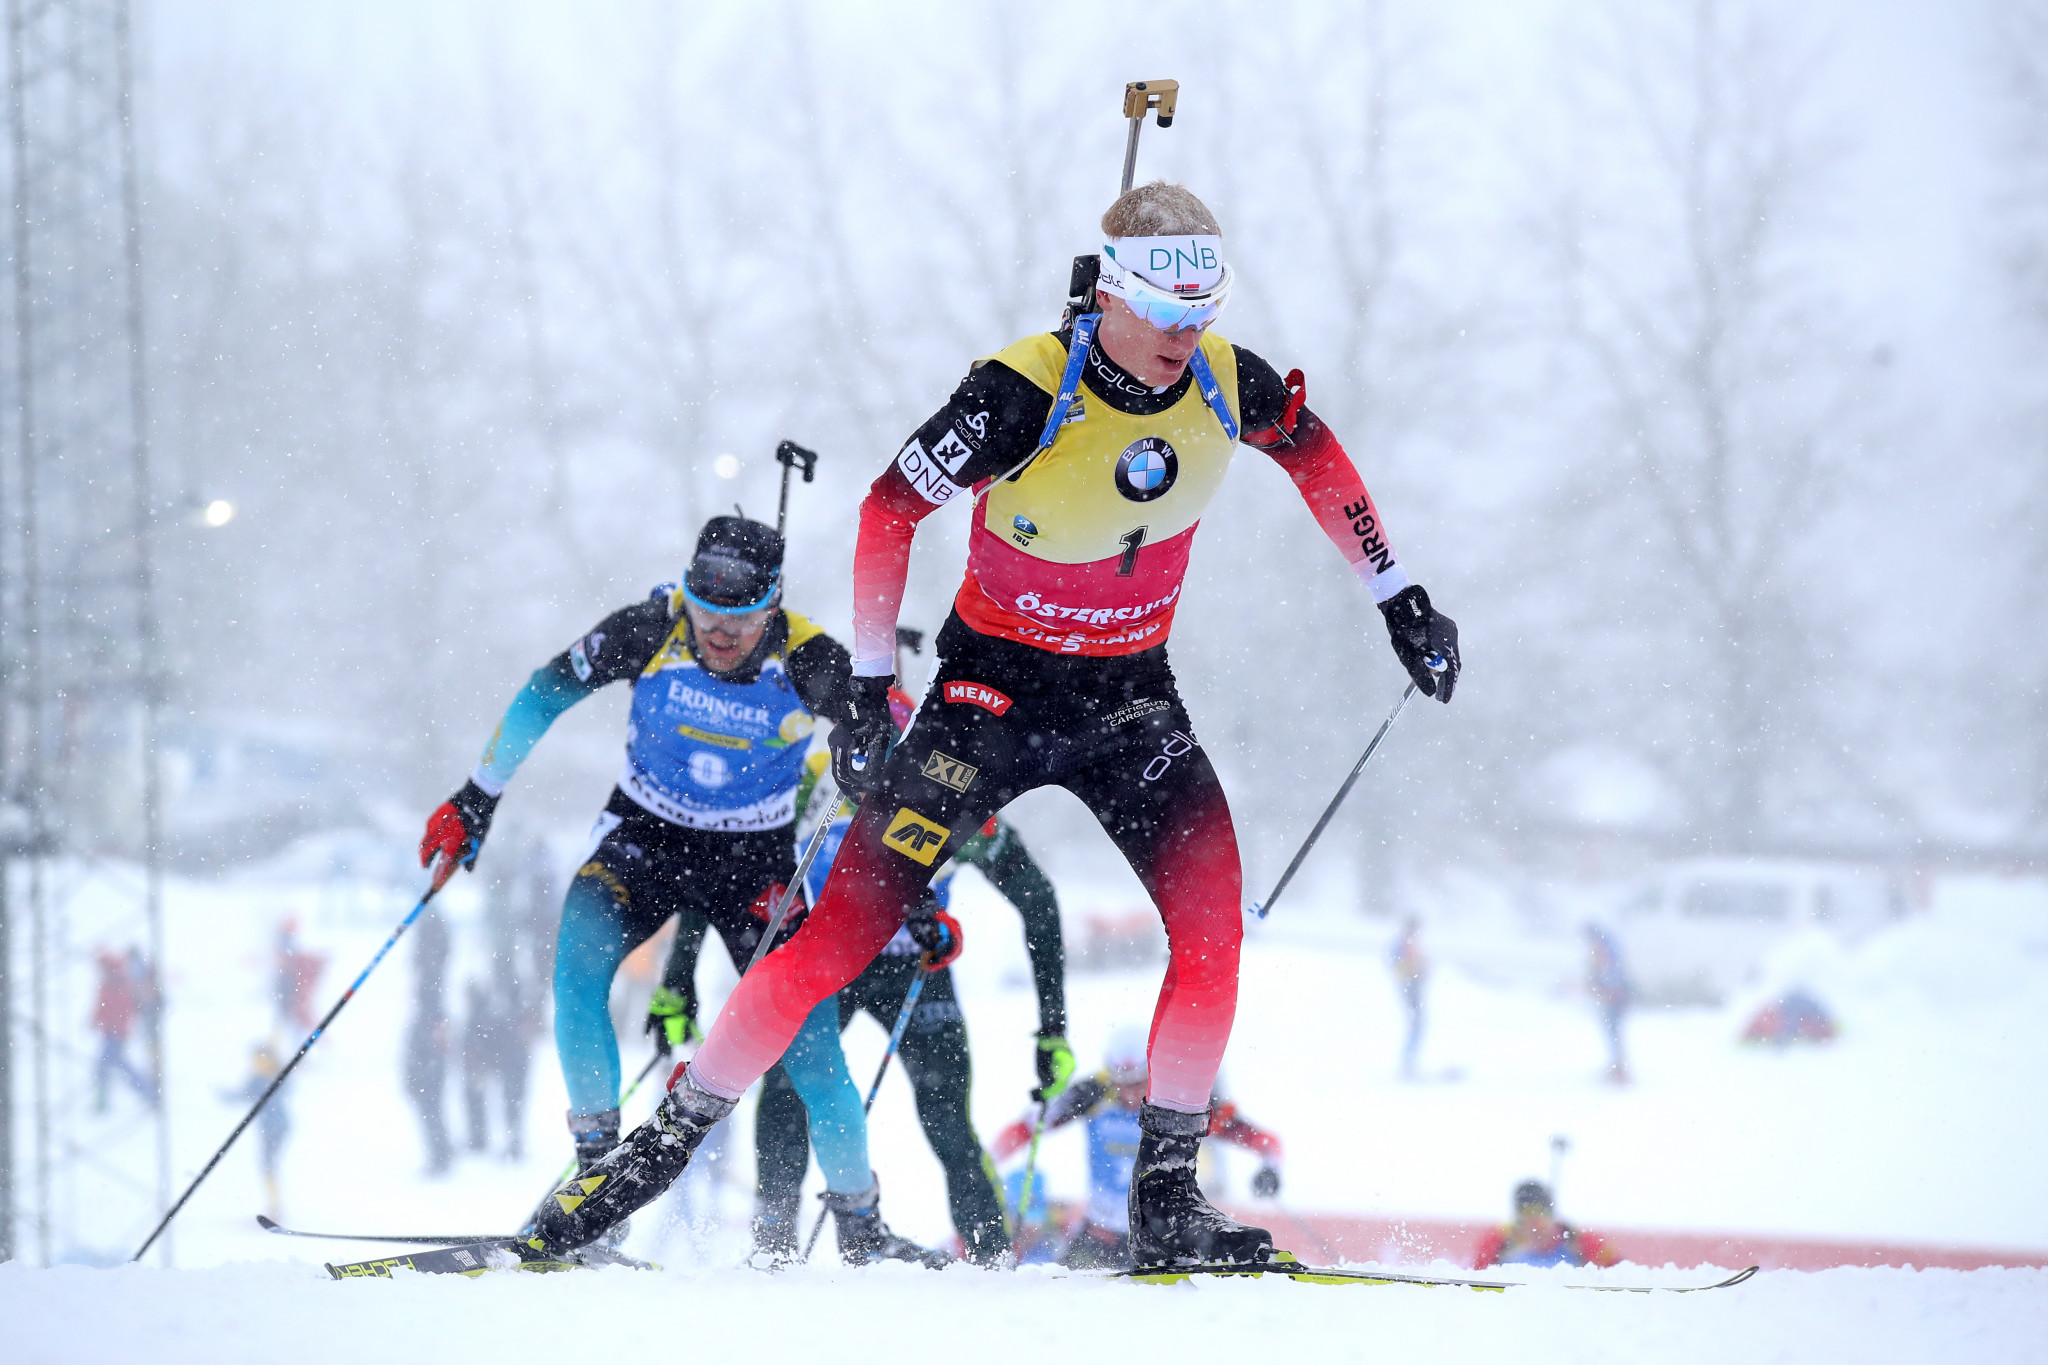 Norway's Johannes Thingnes Bø has already wrapped up the men's overall title ©Getty Images